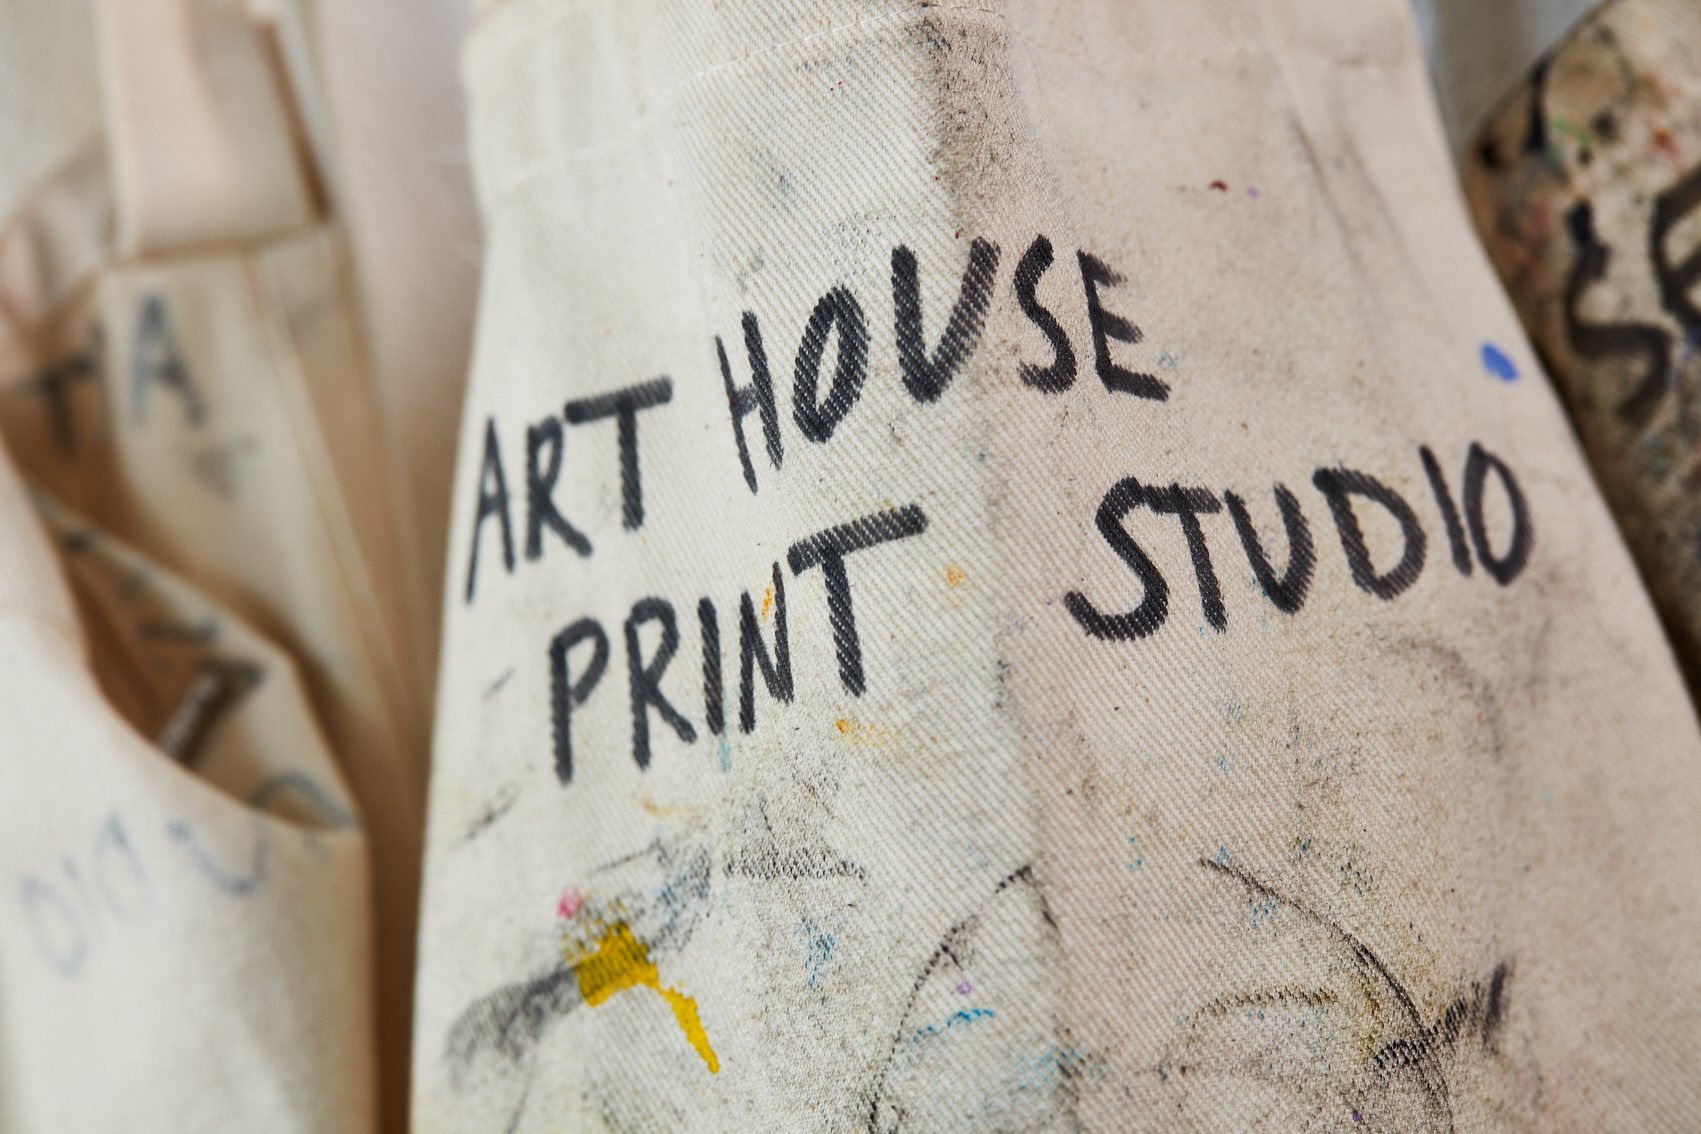 The Art House Print Studio